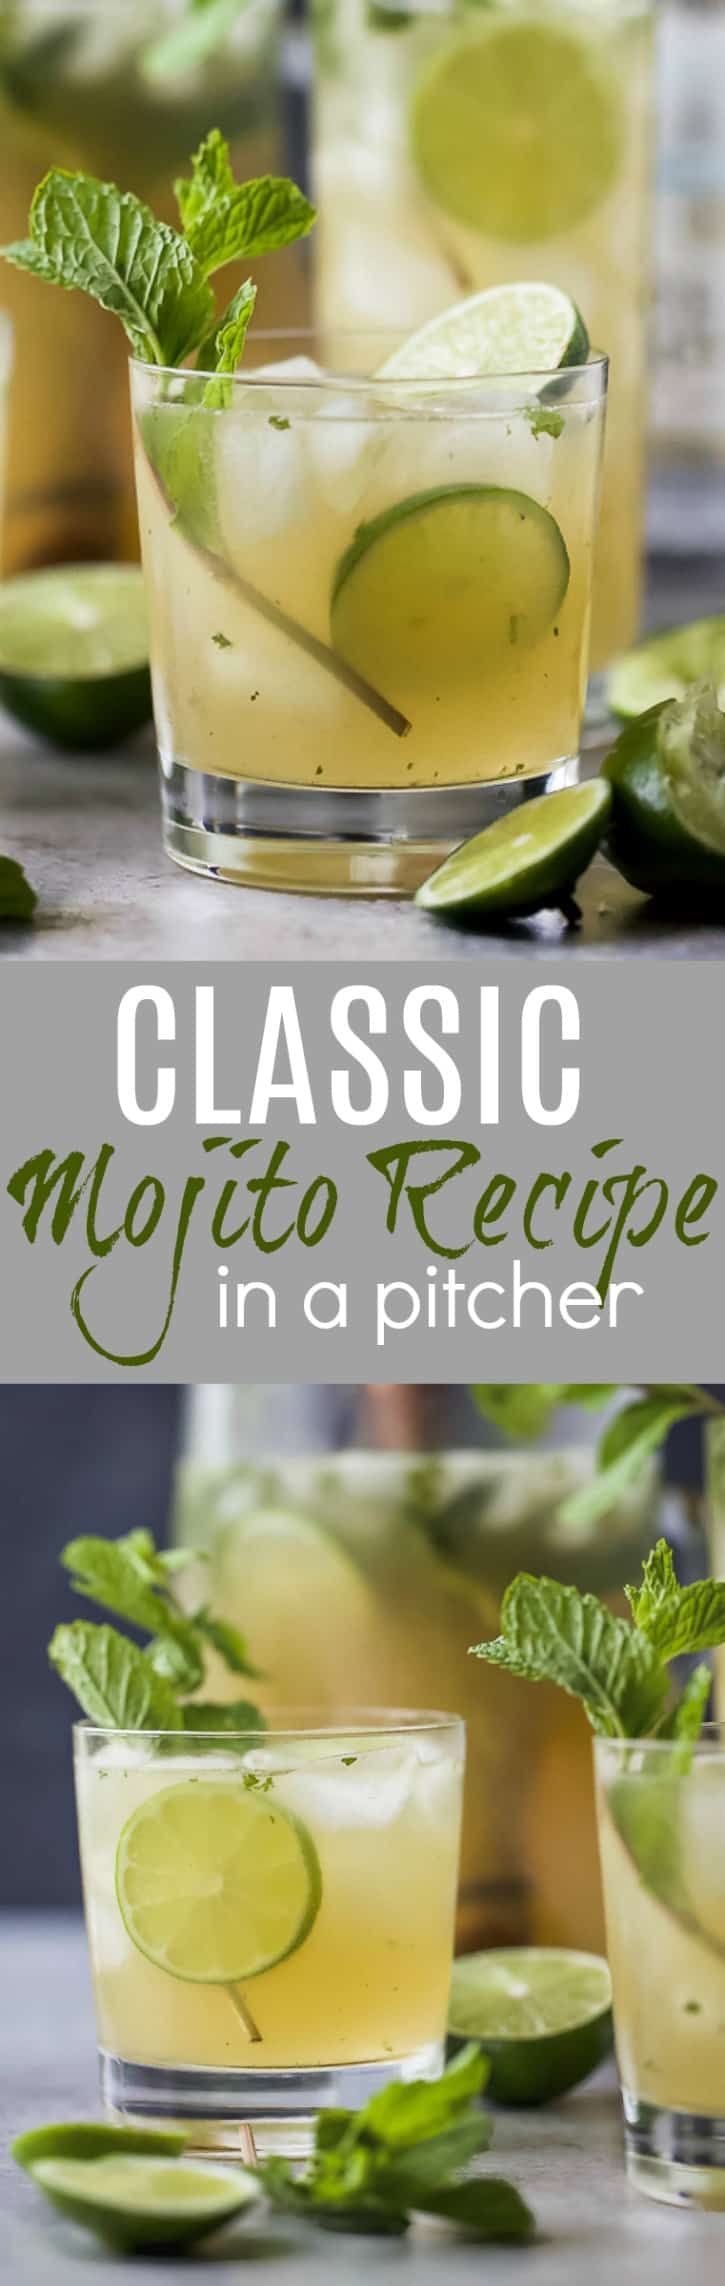 This Classic Mojito Recipe  made in a pitcher will be the hit of the party! It's easy, light and super refreshing for the summer!